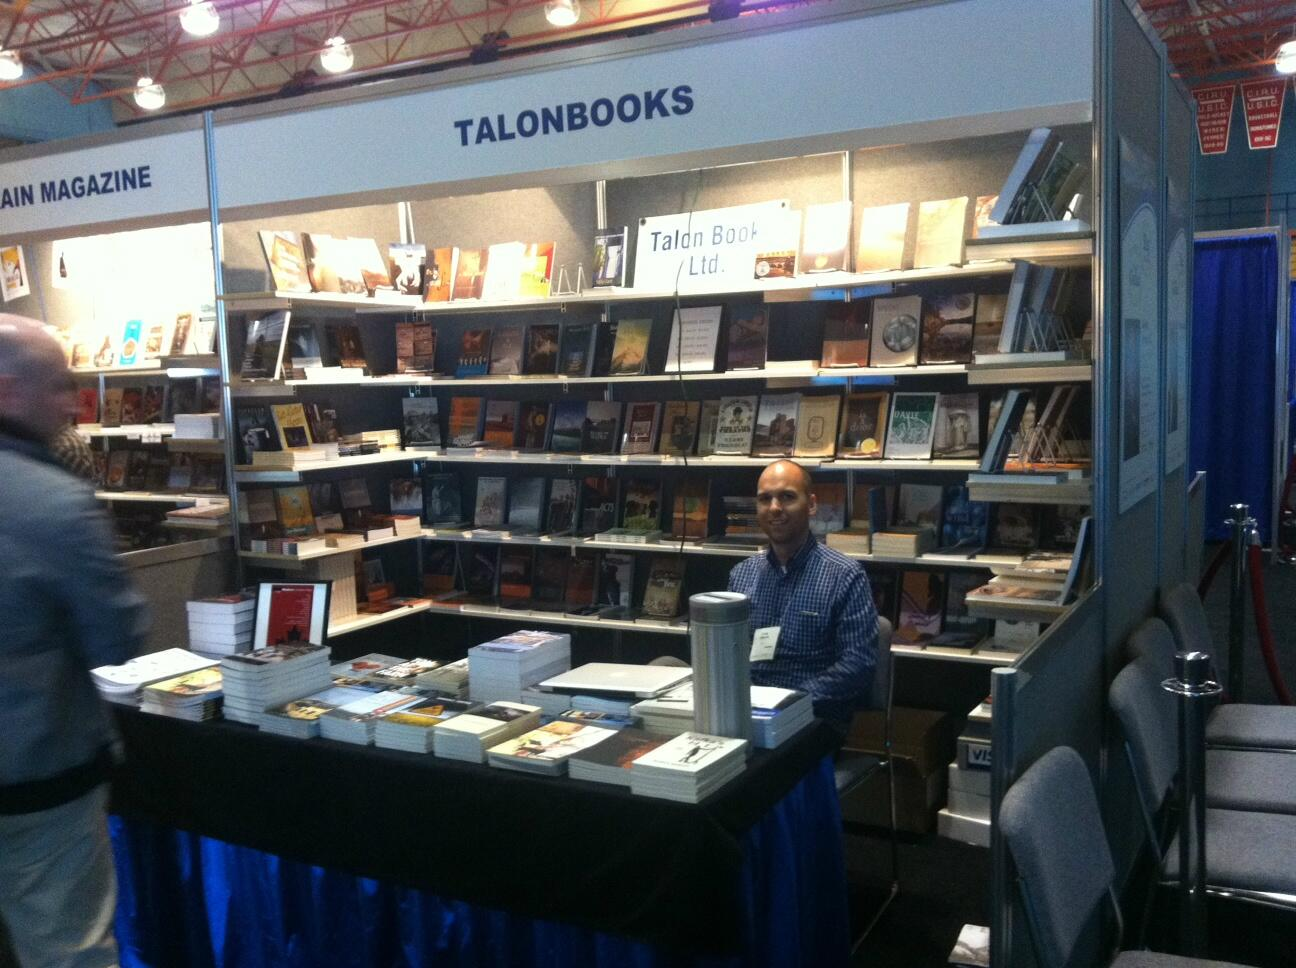 [image: the Talonbooks booth at Congress 2013]